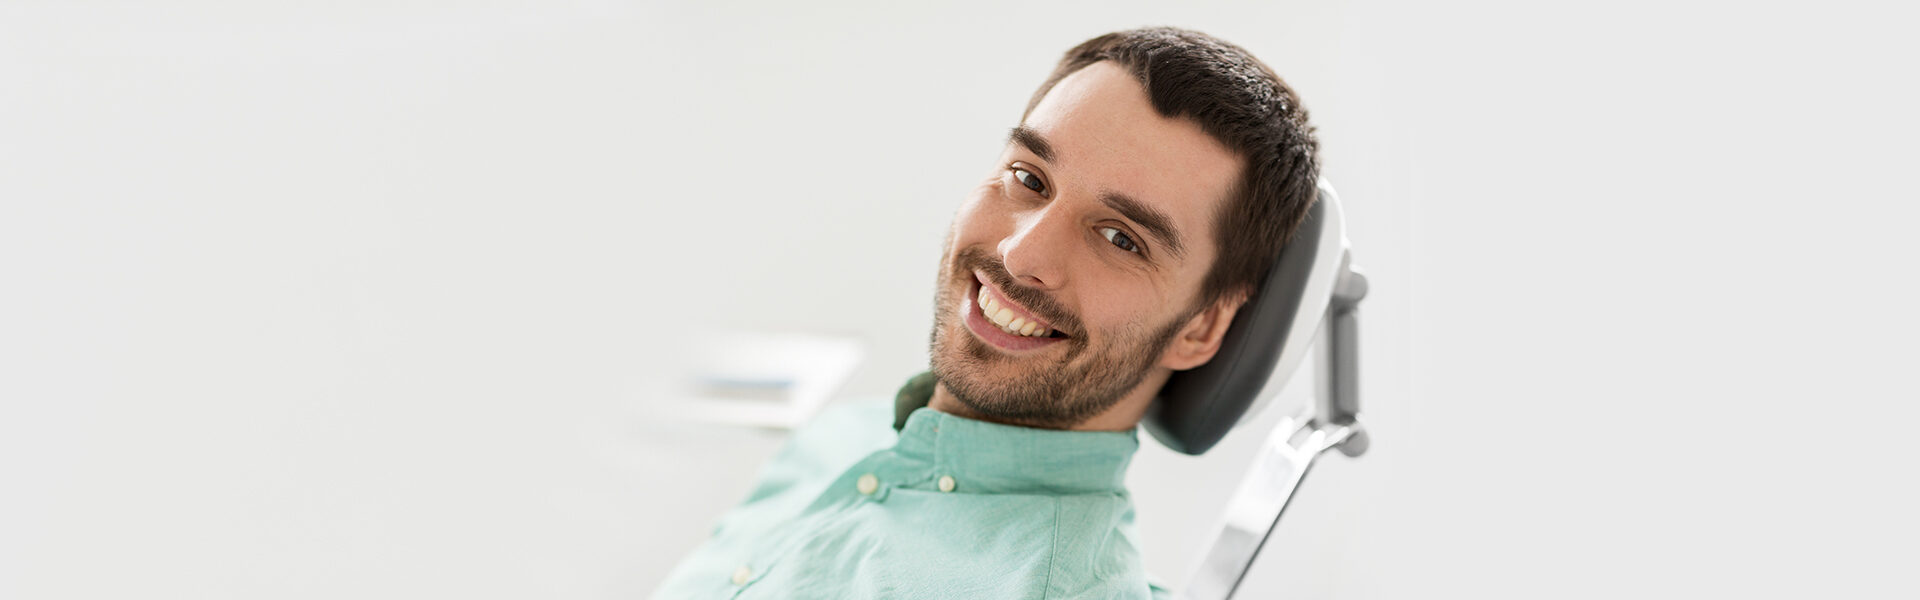 Options for Replacing Teeth